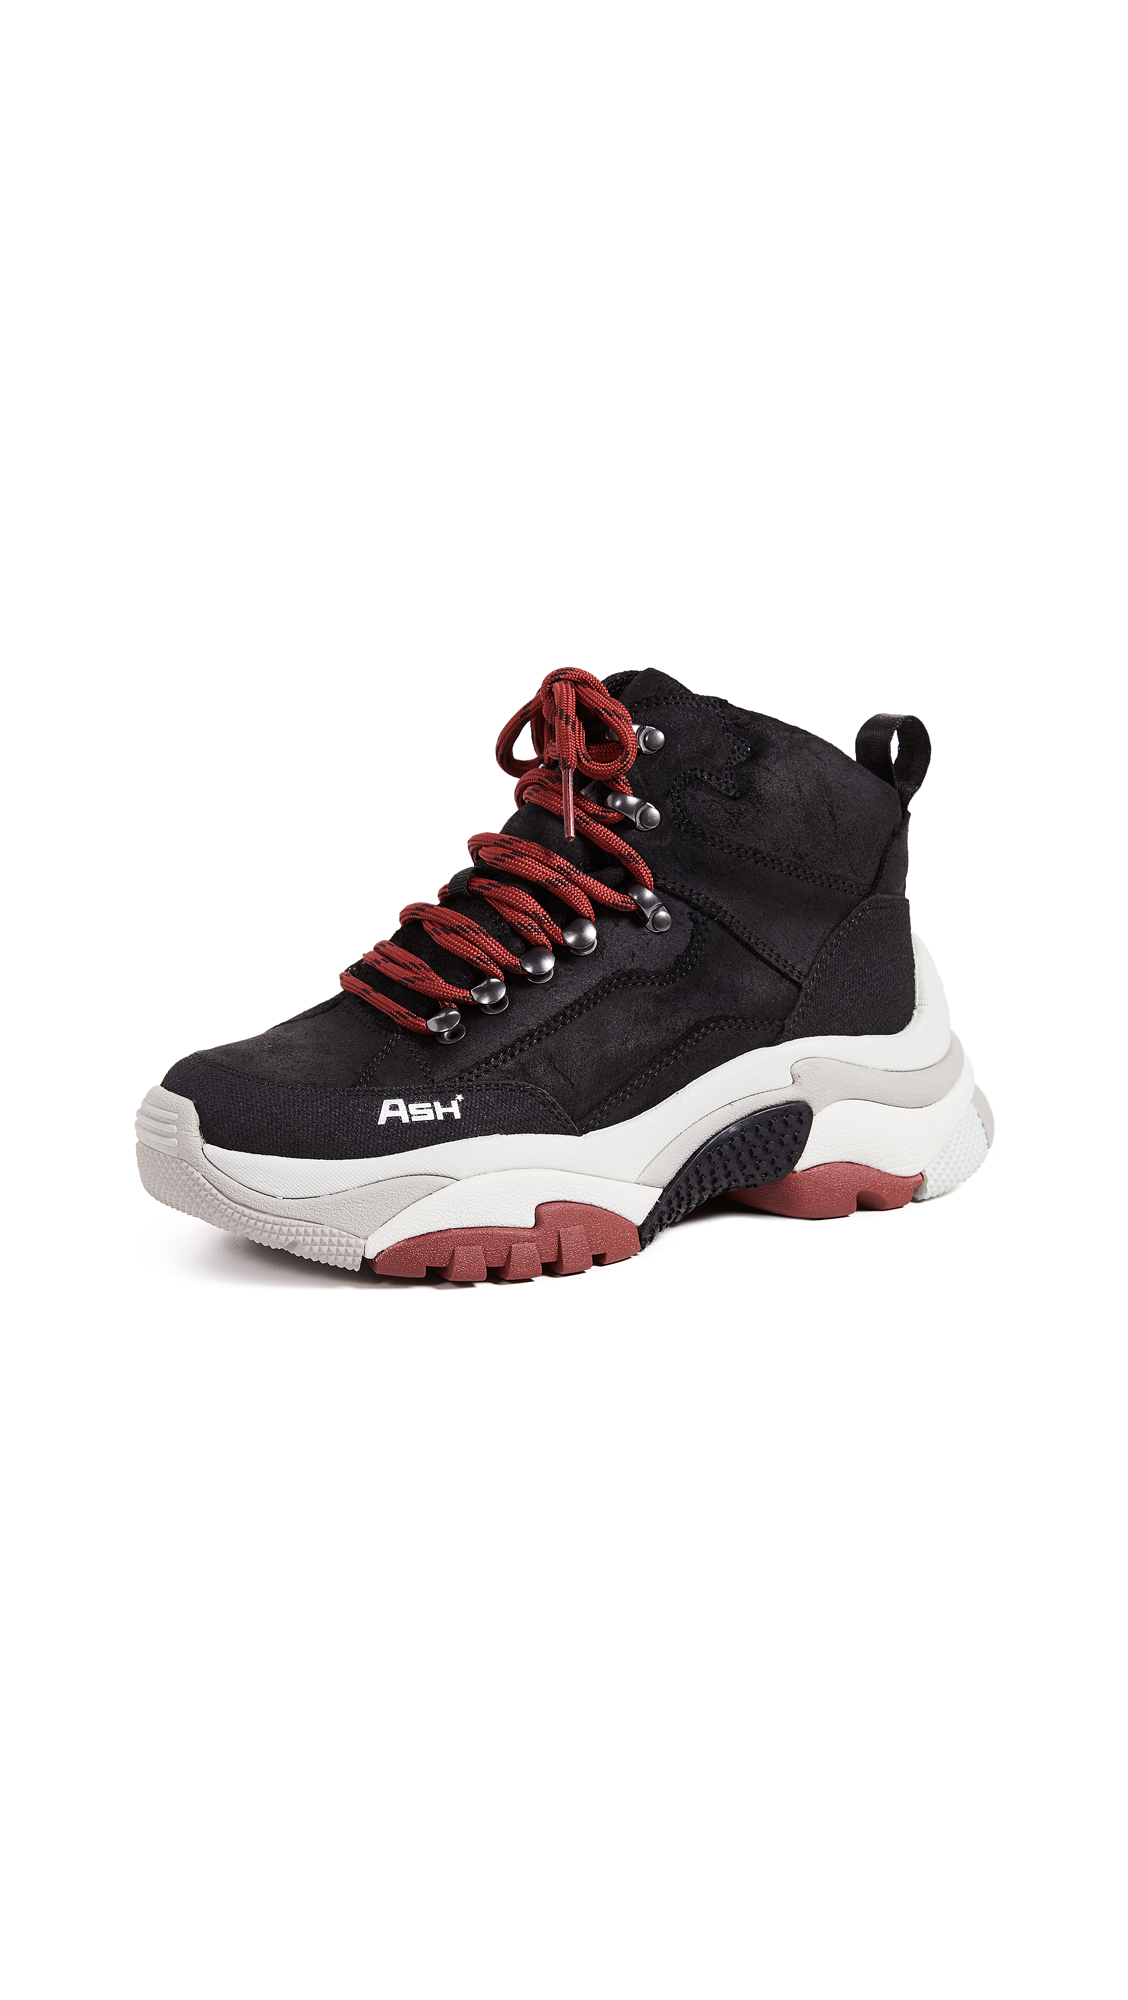 Ash Alfa Hiker Sneakers - Black/Black